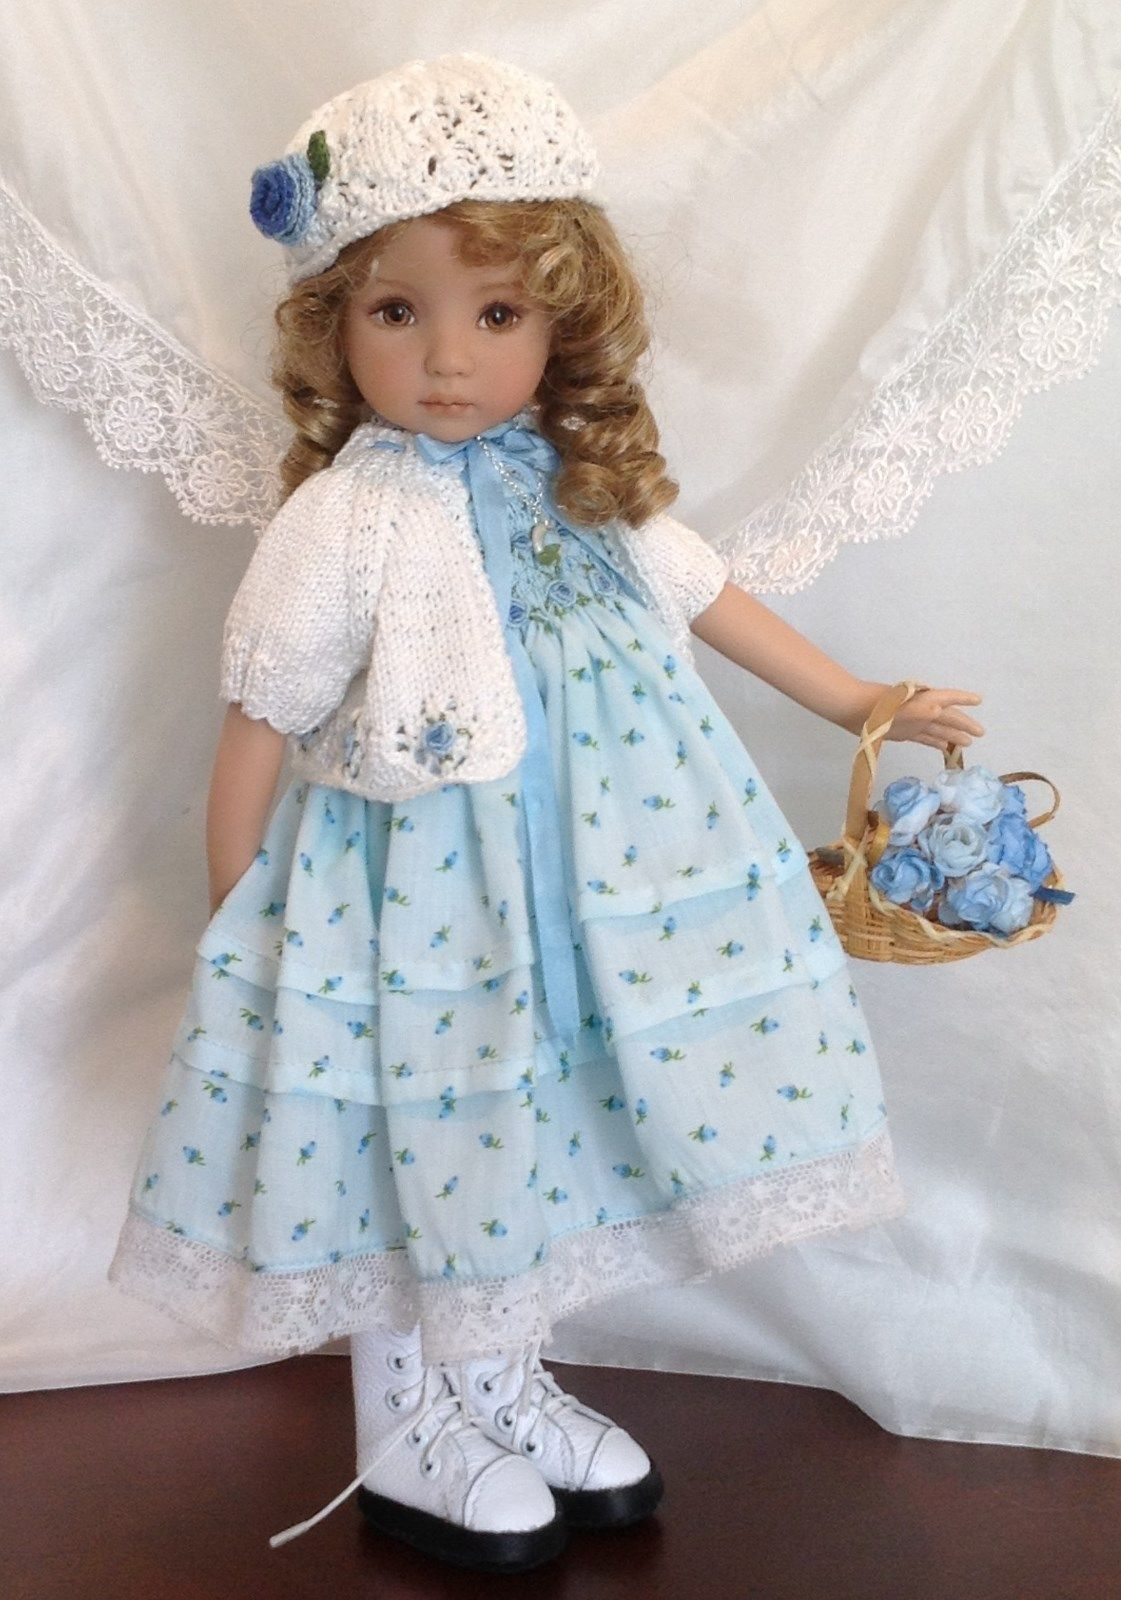 """Smocked Outfit with Boots Shoes for Dianna Effner 13"""" Little Darling Dolls"""